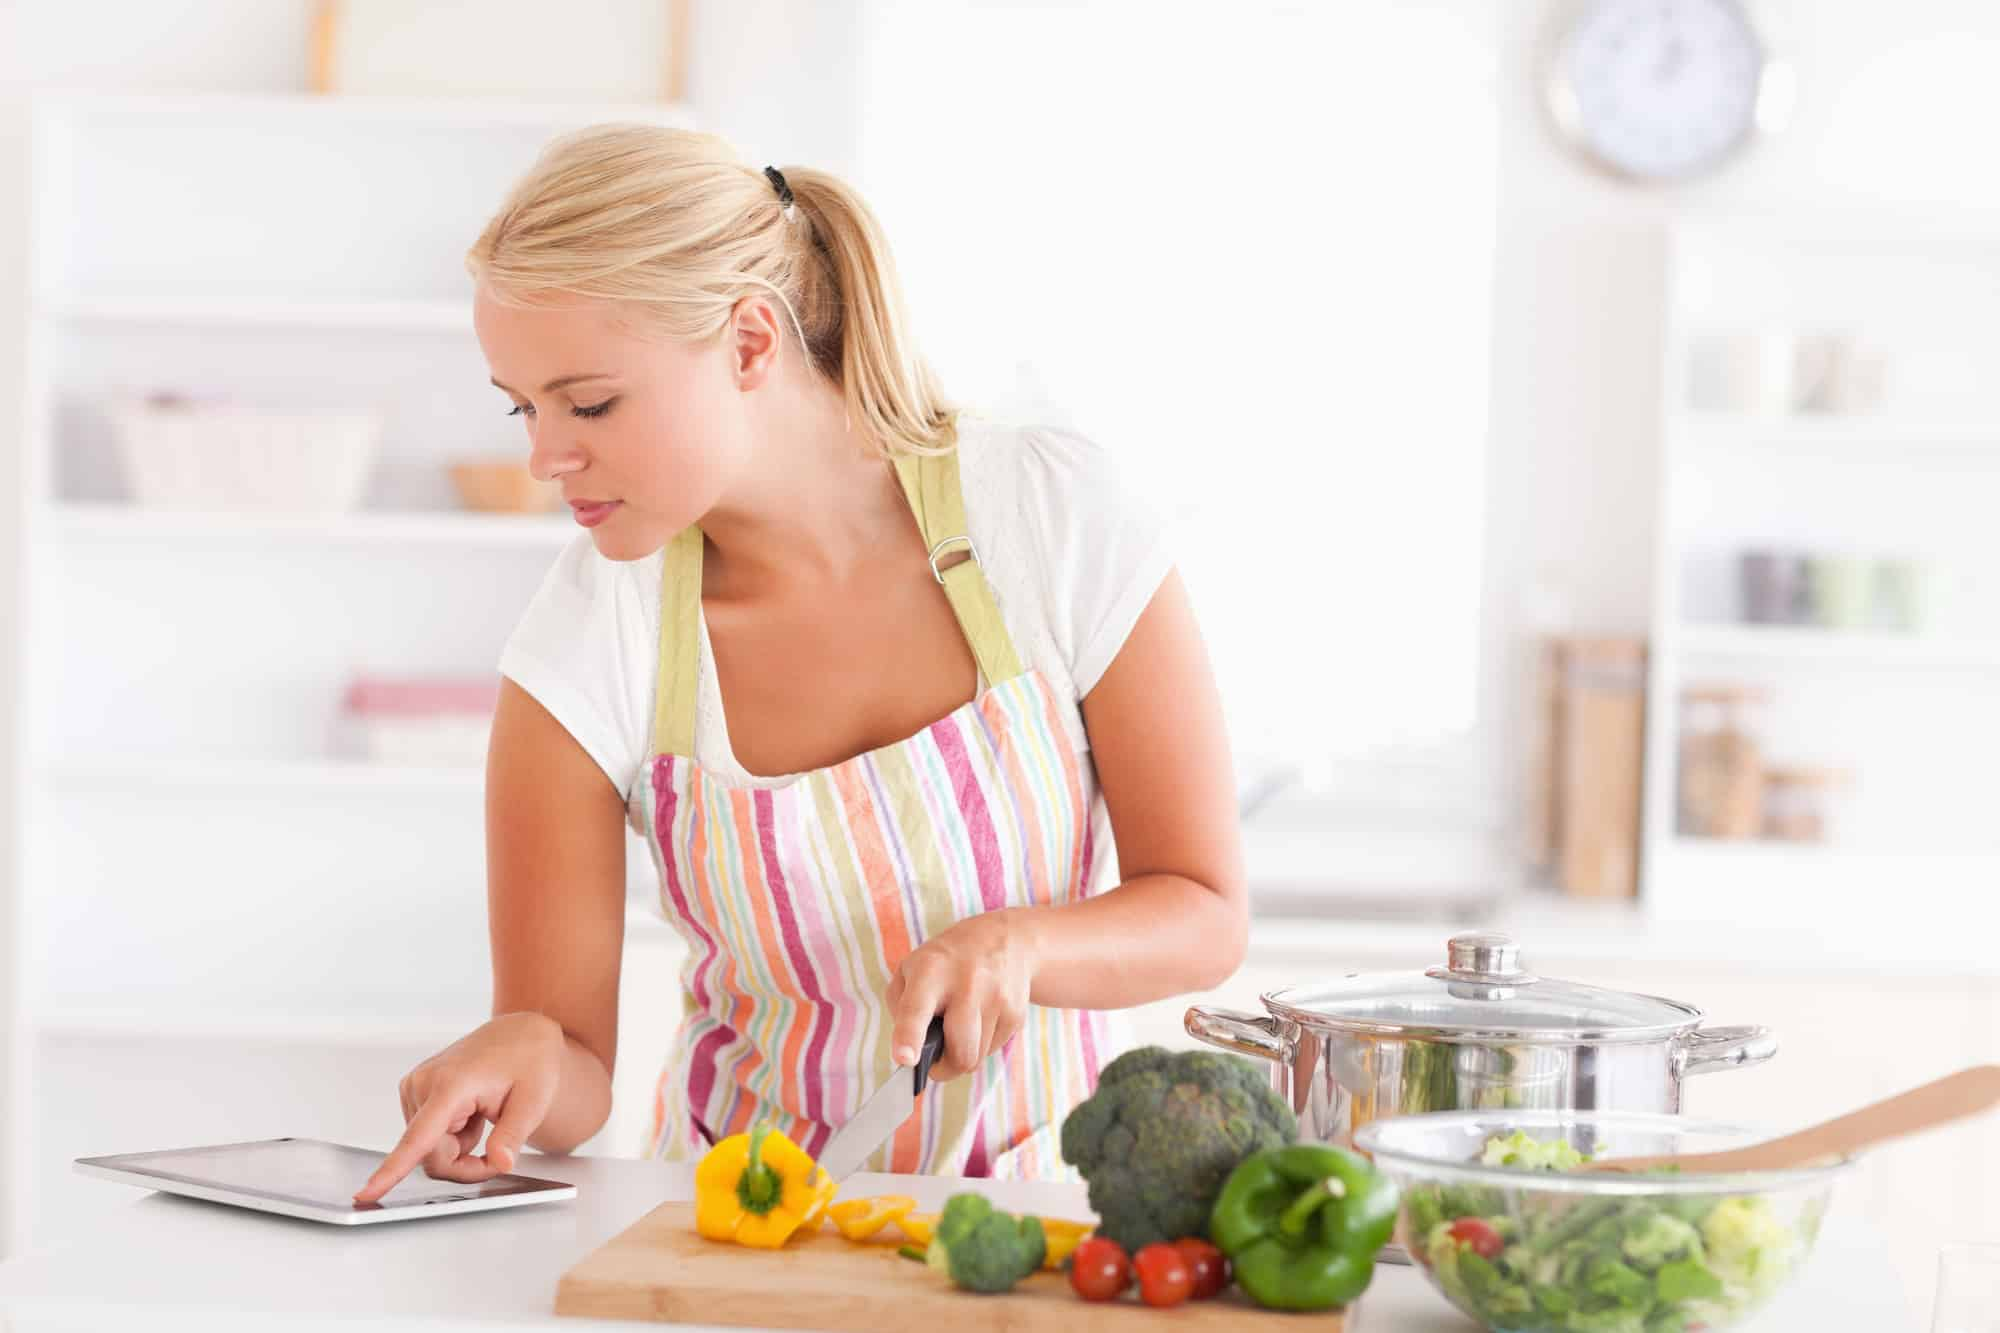 Woman cooking while looking at tablet